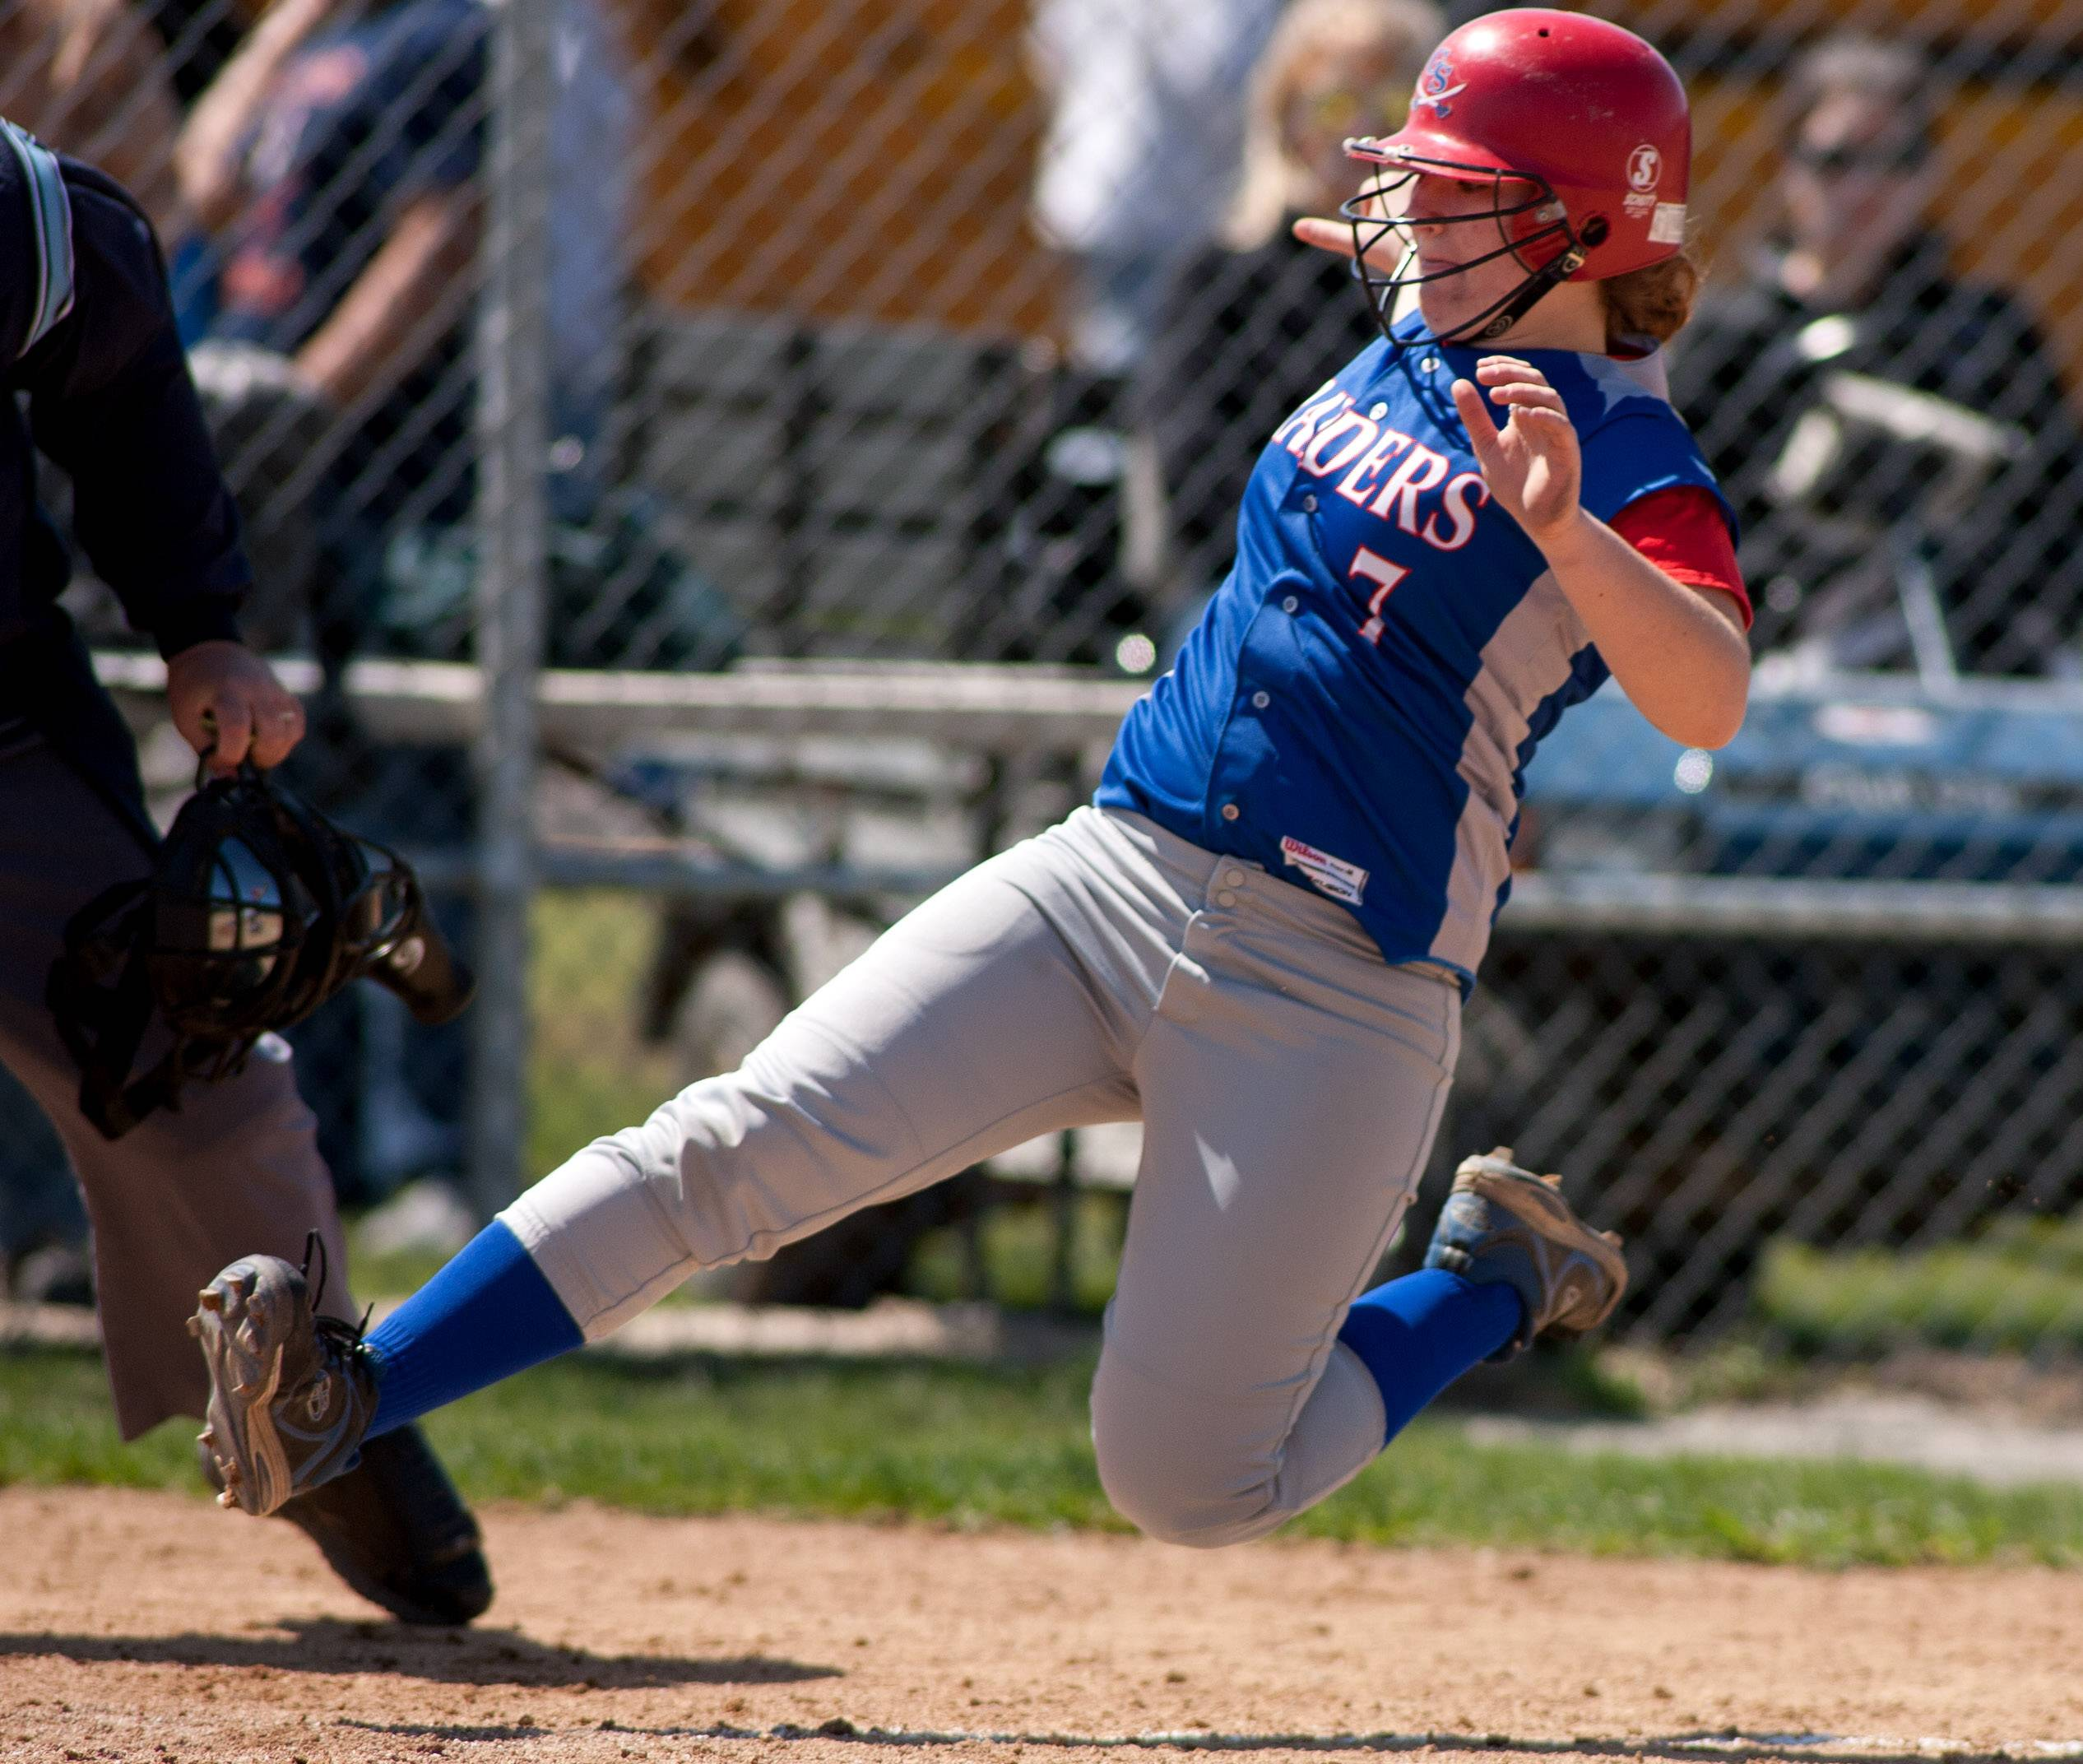 Glenbard South's Holly Taylor slides home for the final run of the game against Morton during girls softball action in Lombard.